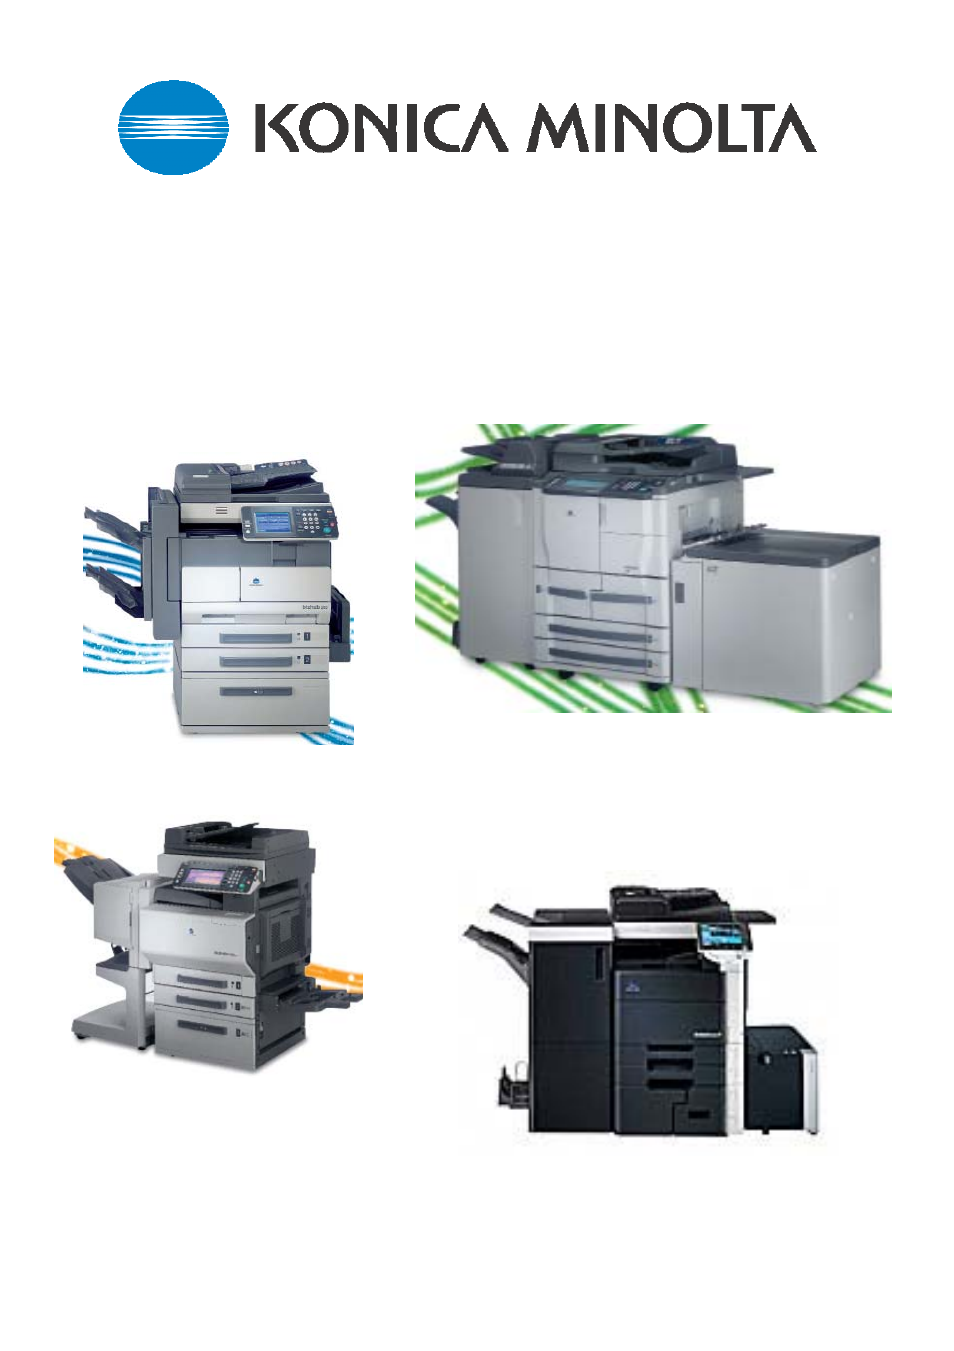 Konica Minolta BIZHUB 451 User Manual | 14 pages | Also for: BIZHUB 253,  BIZHUB 420/500, BIZHUB C450, BIZHUB 361/421/501, BIZHUB 650, BIZHUB 550,  BIZHUB ...